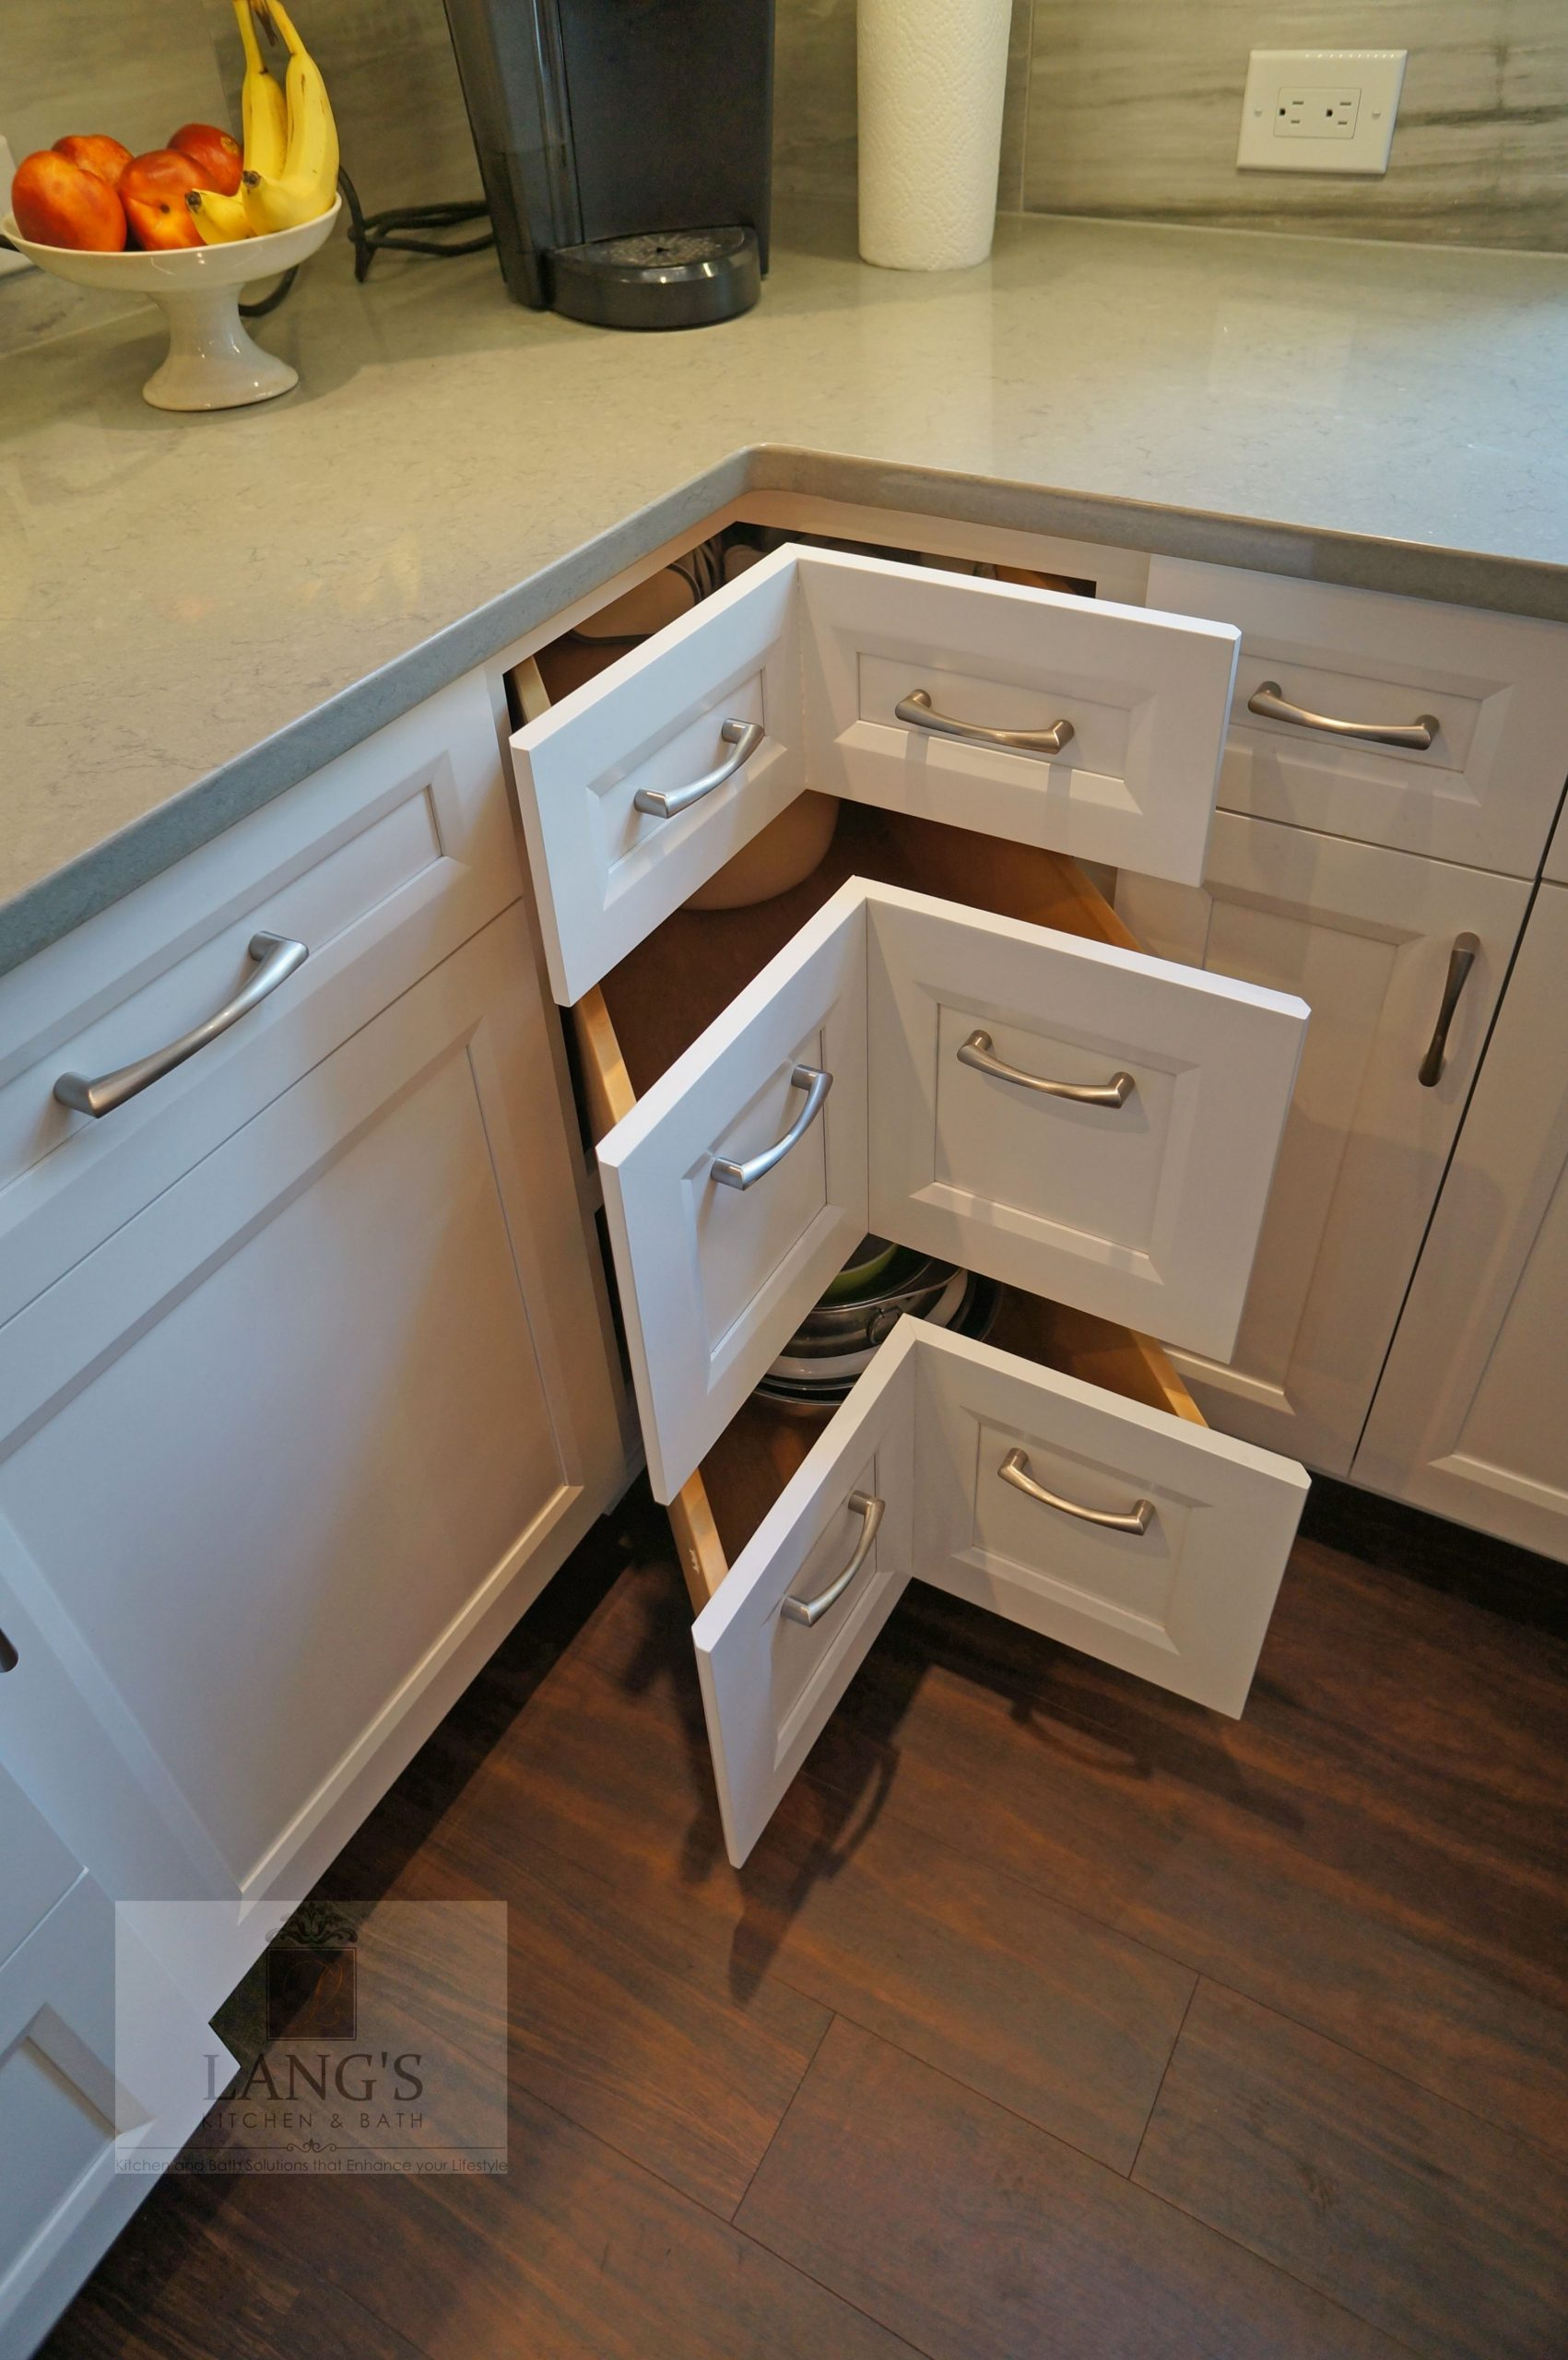 Rob Naylor (naylor9) on Pinterest - Naylor Kitchen Cabinet